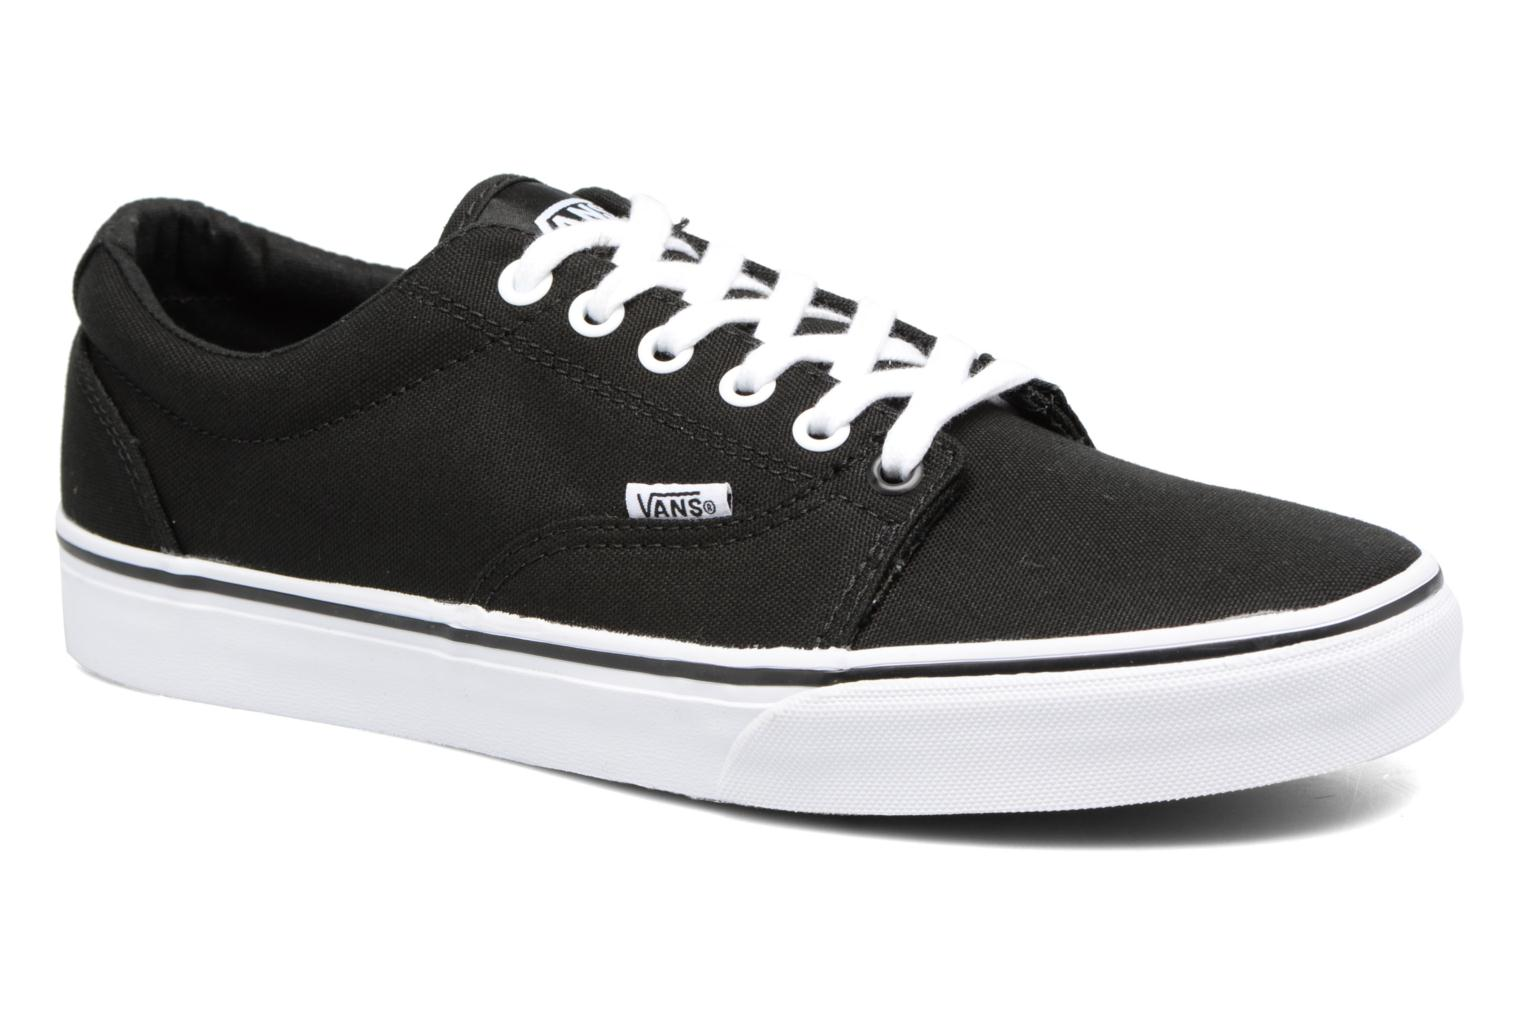 Kress Black/true white